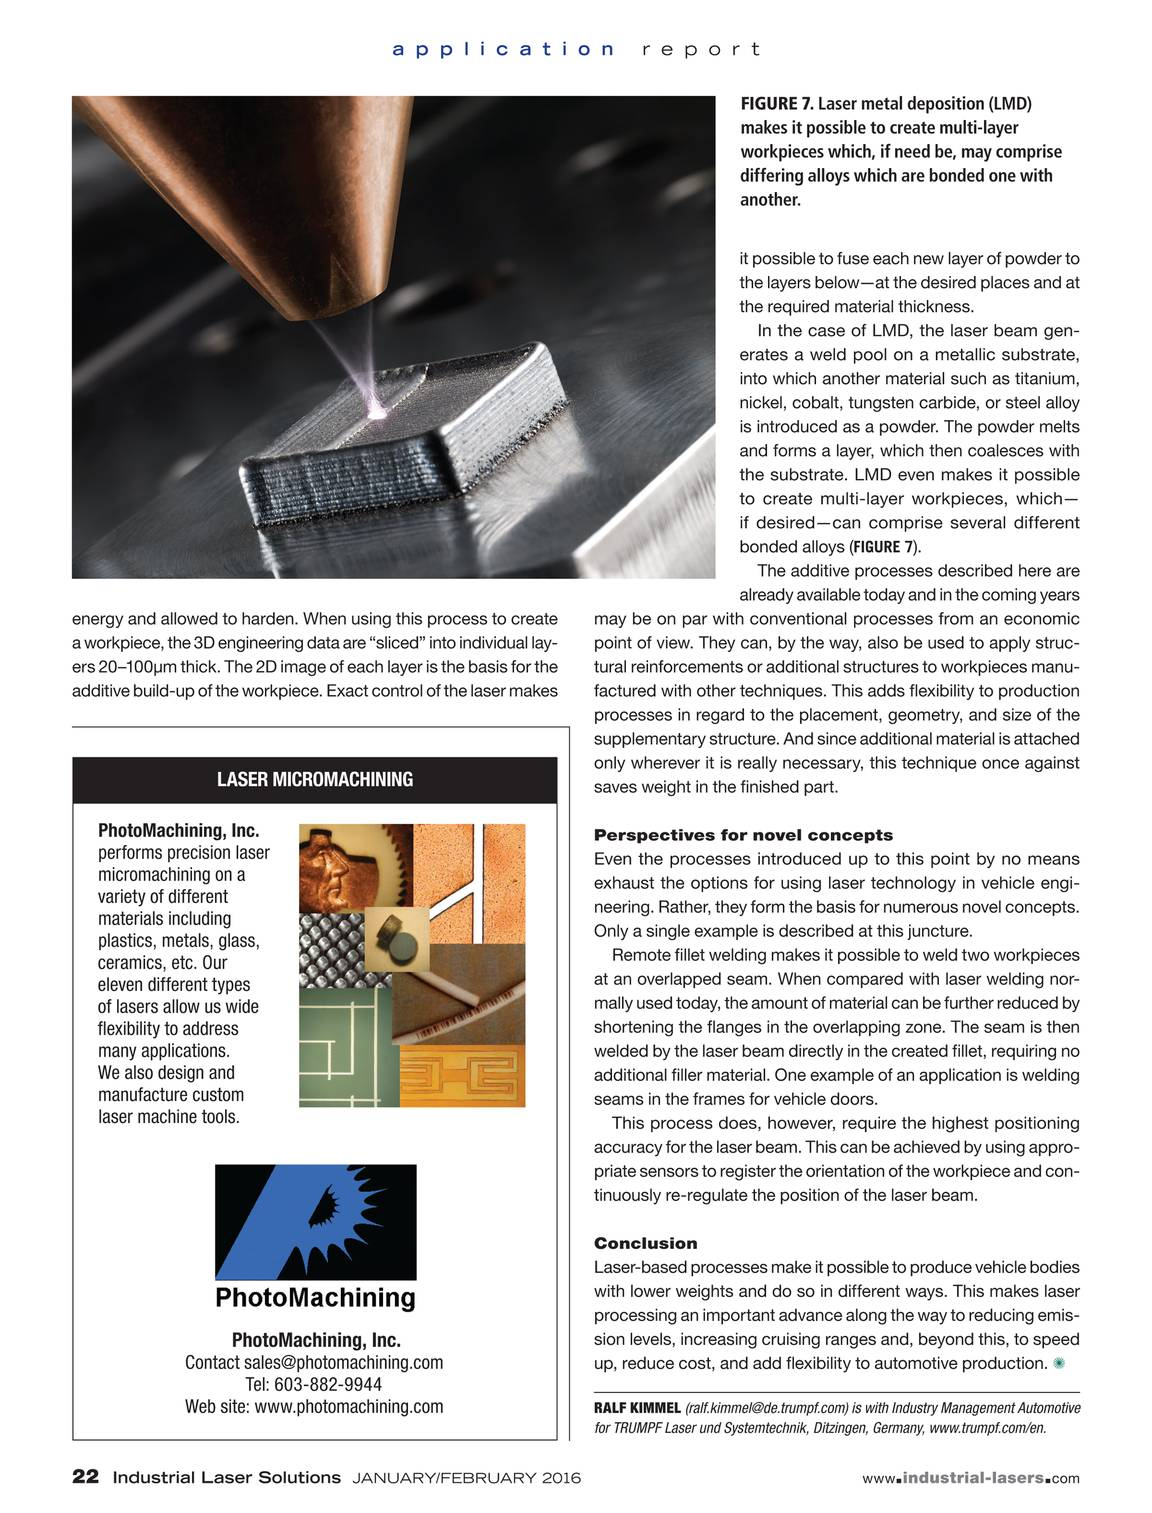 Industrial Laser Solutions - January/February 2016 - page 21